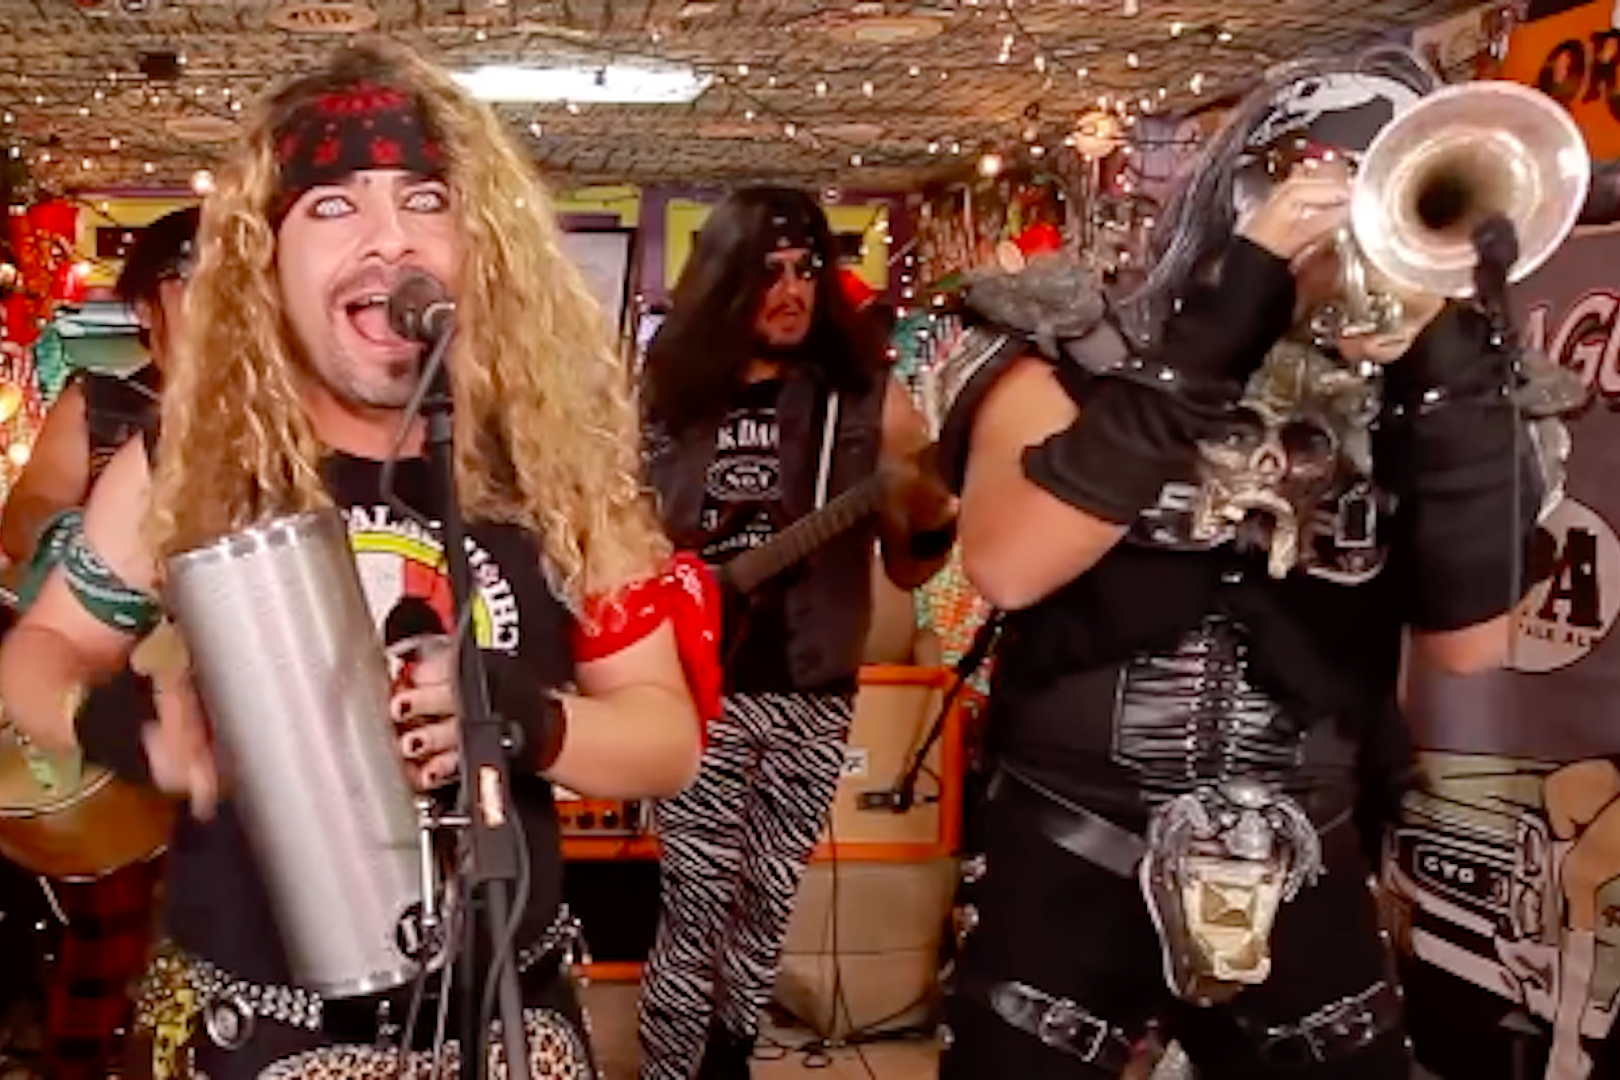 Watch This Mariachi Band Cover 11 of Your Favorite Rock + Metal Songs